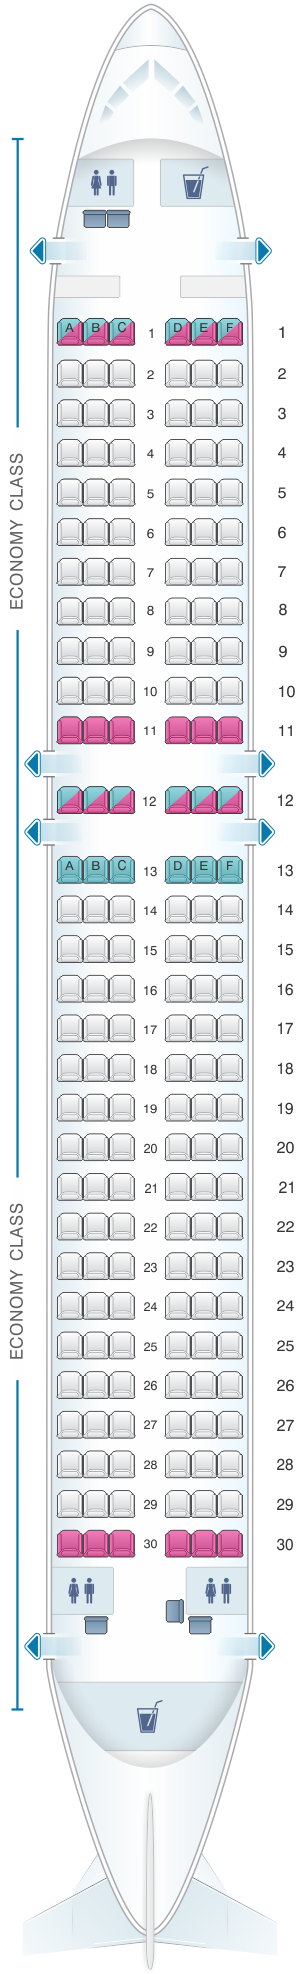 Seat map for Freebird Airlines Airbus A320